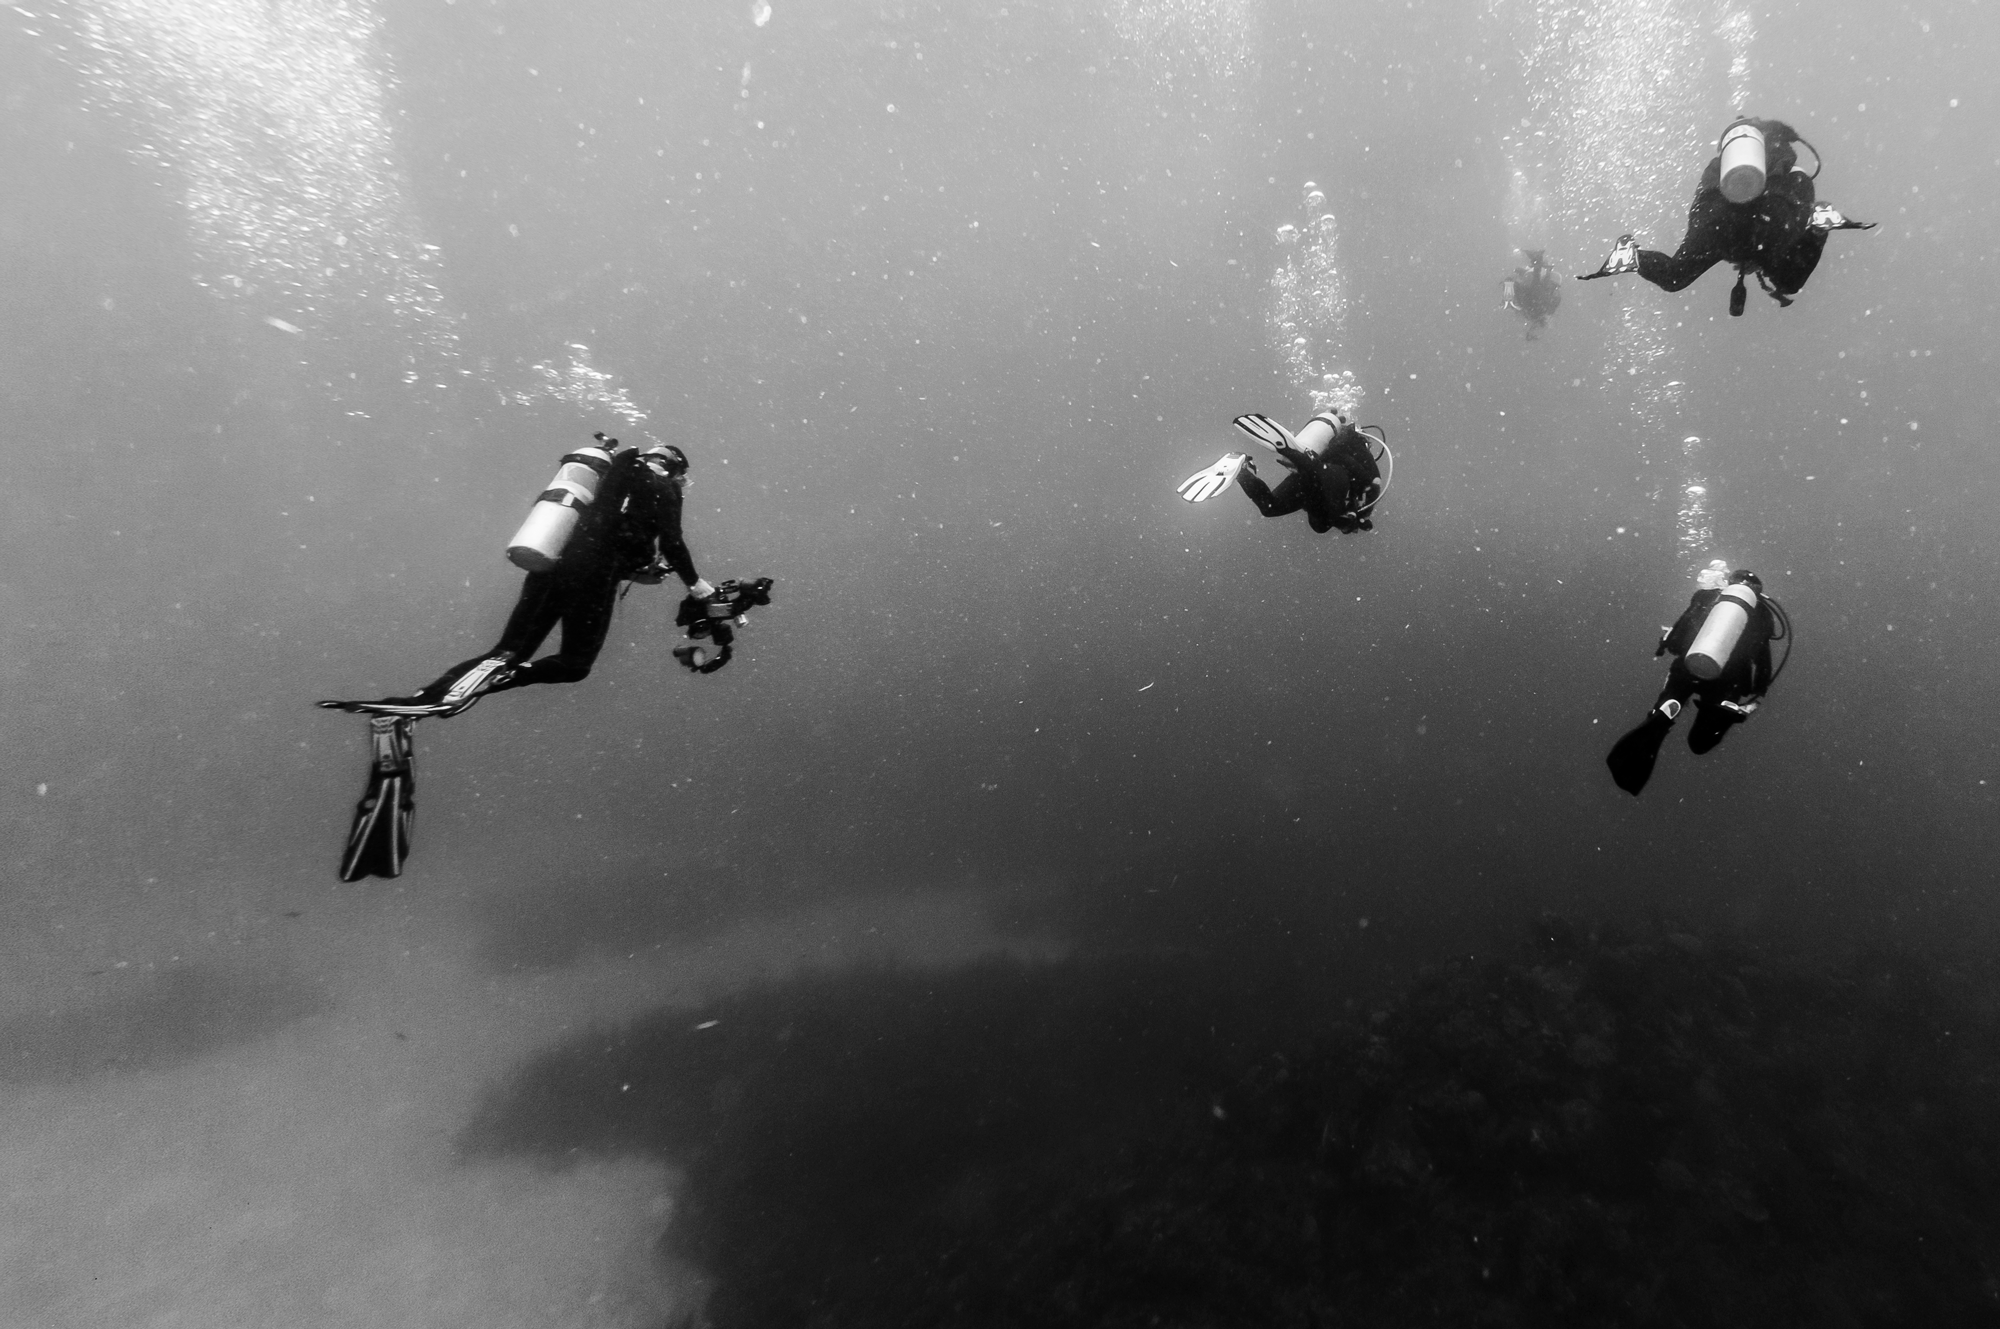 A monochrome seascape with divers